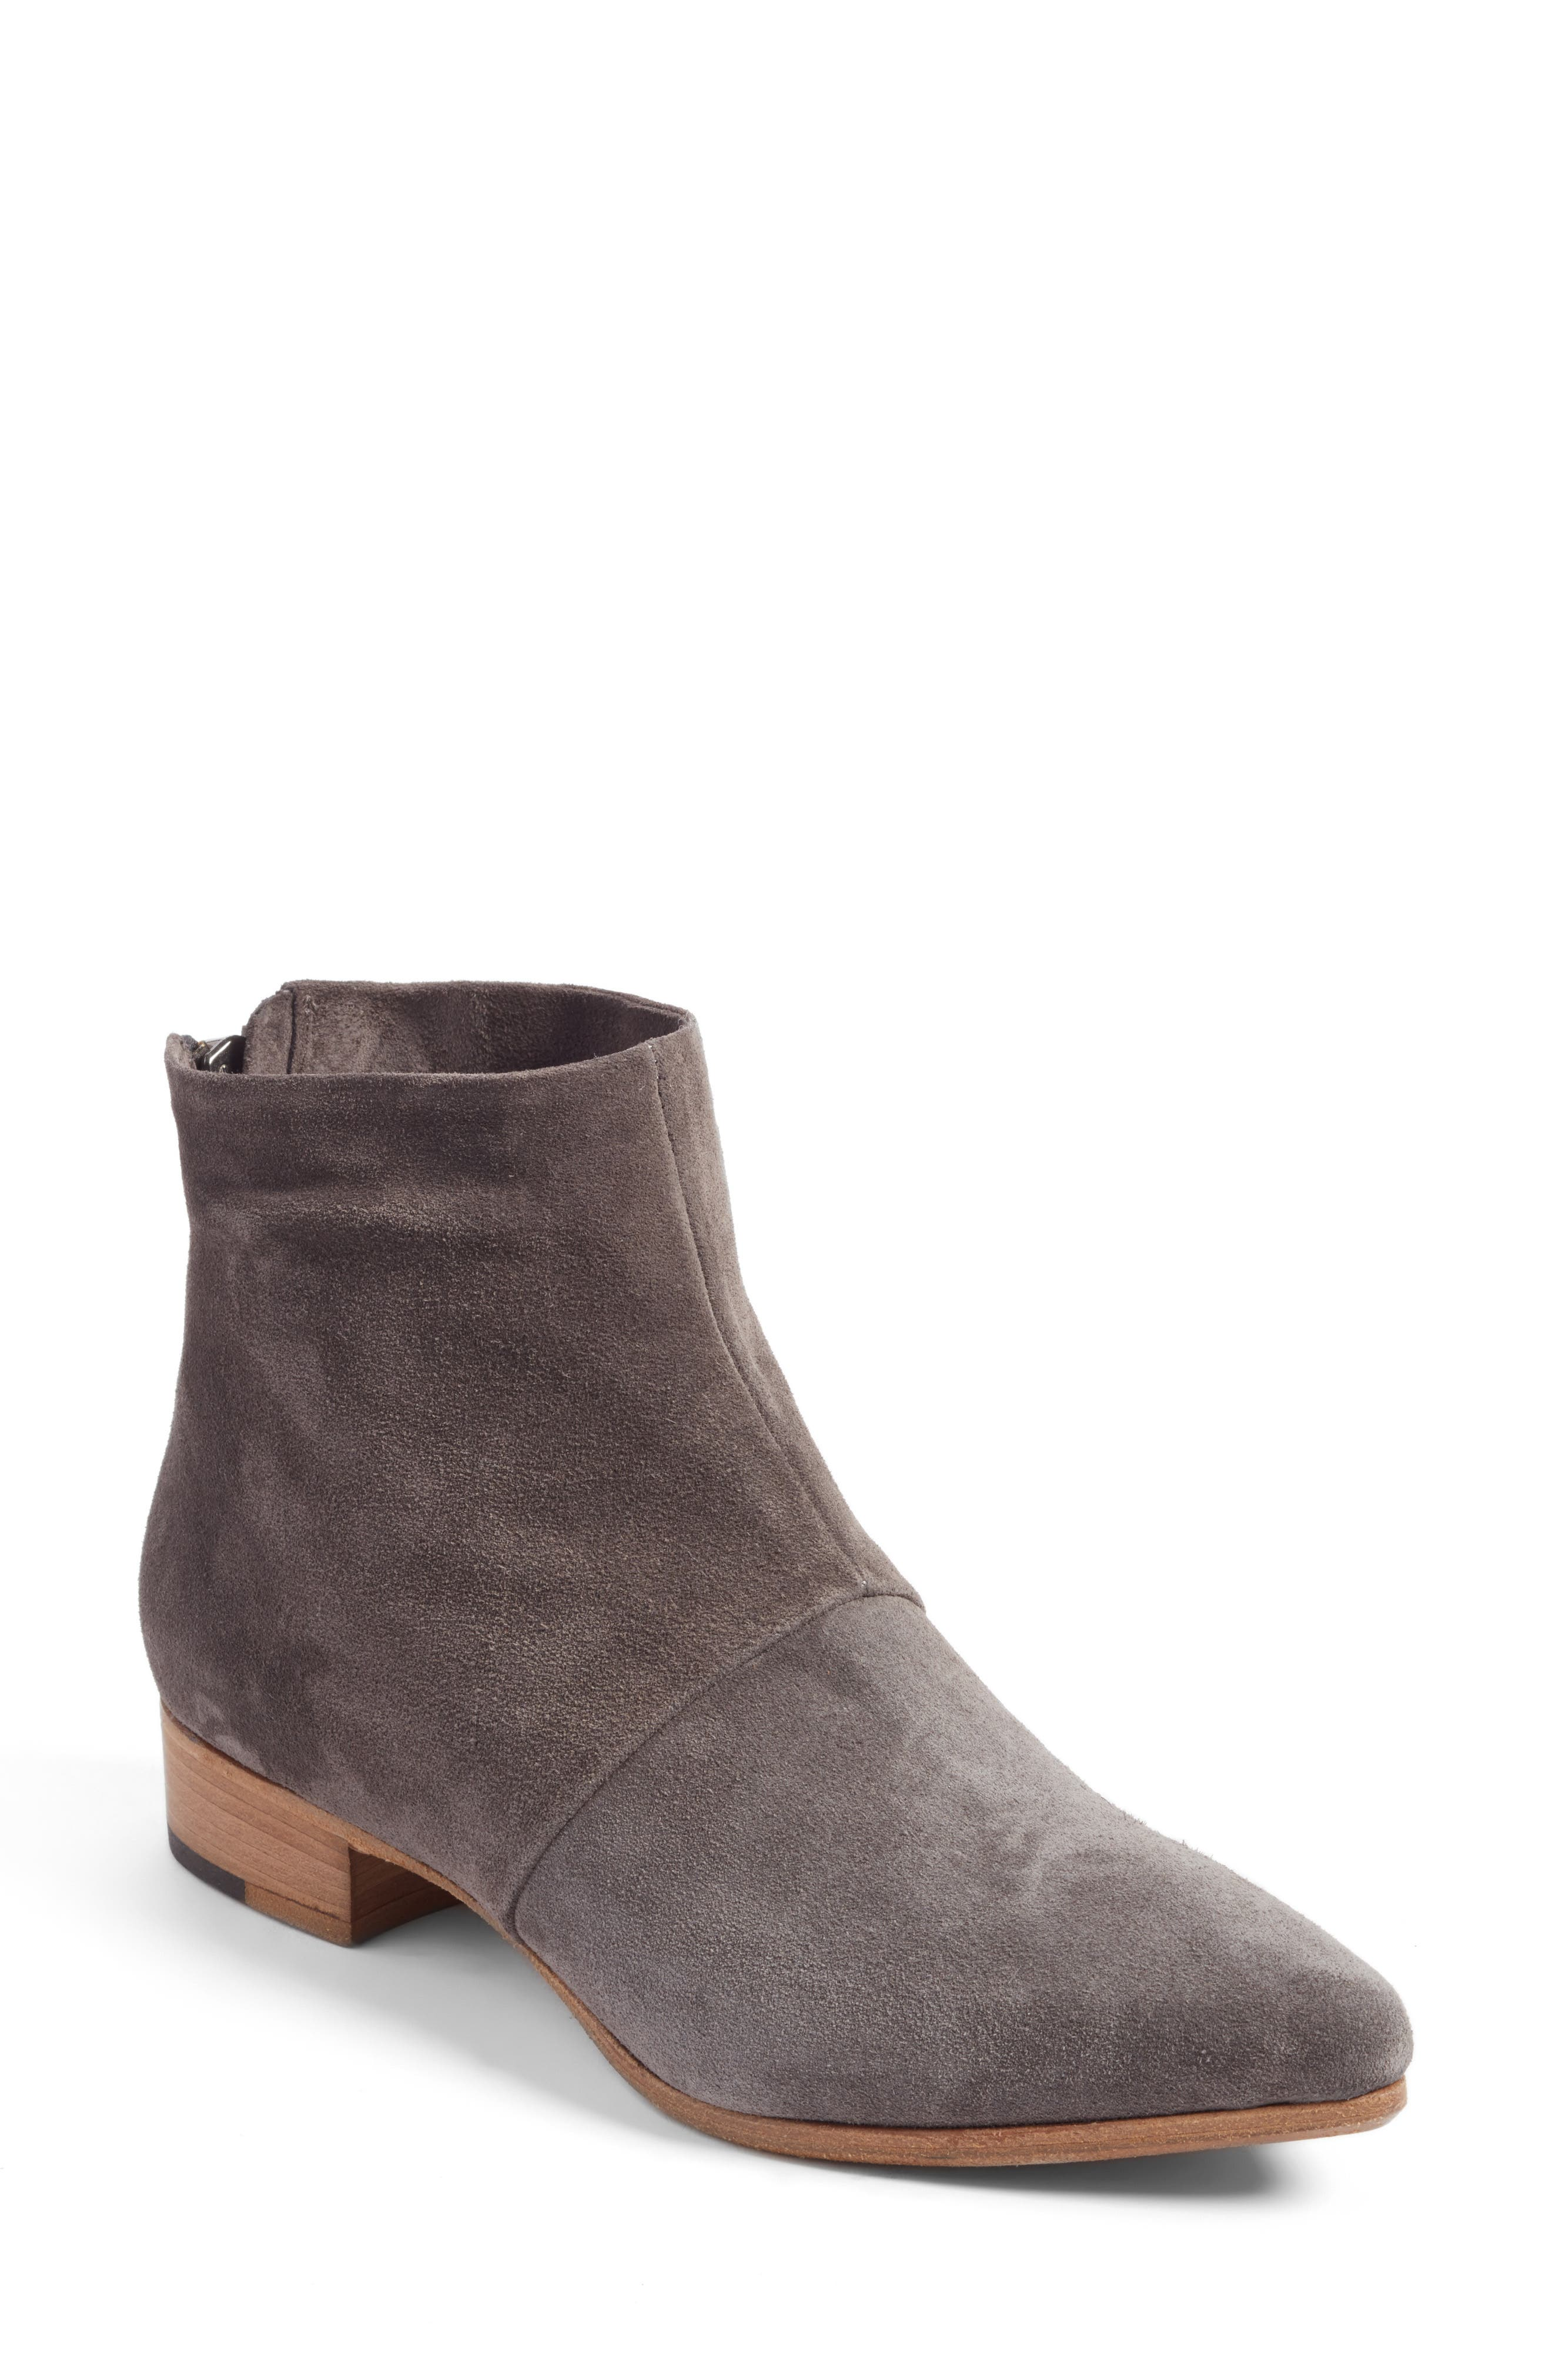 Bellina Mid Top Bootie,                             Main thumbnail 1, color,